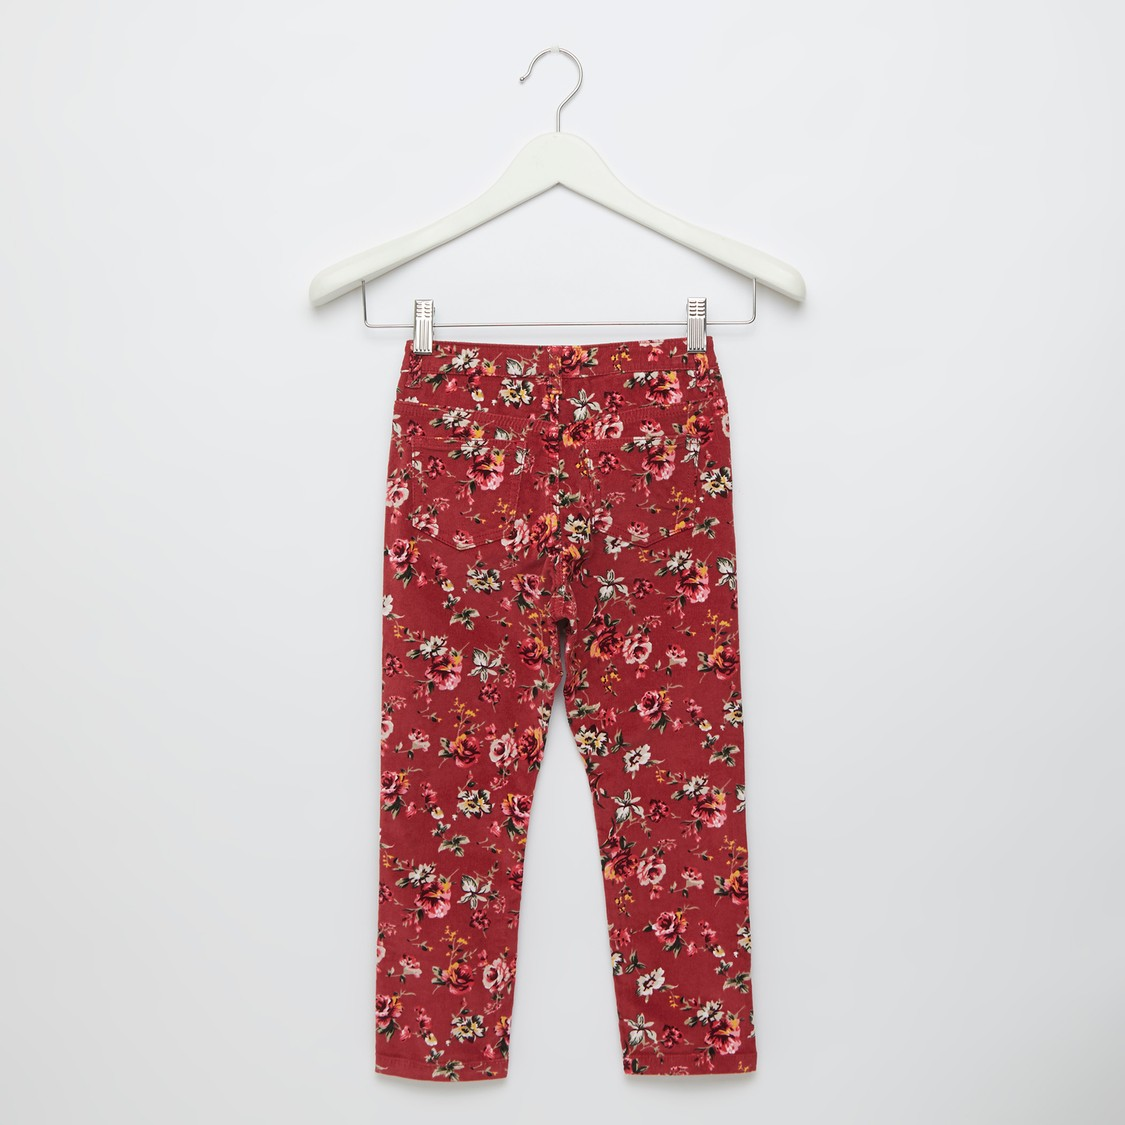 Floral Print Trousers with Pockets and Button Closure